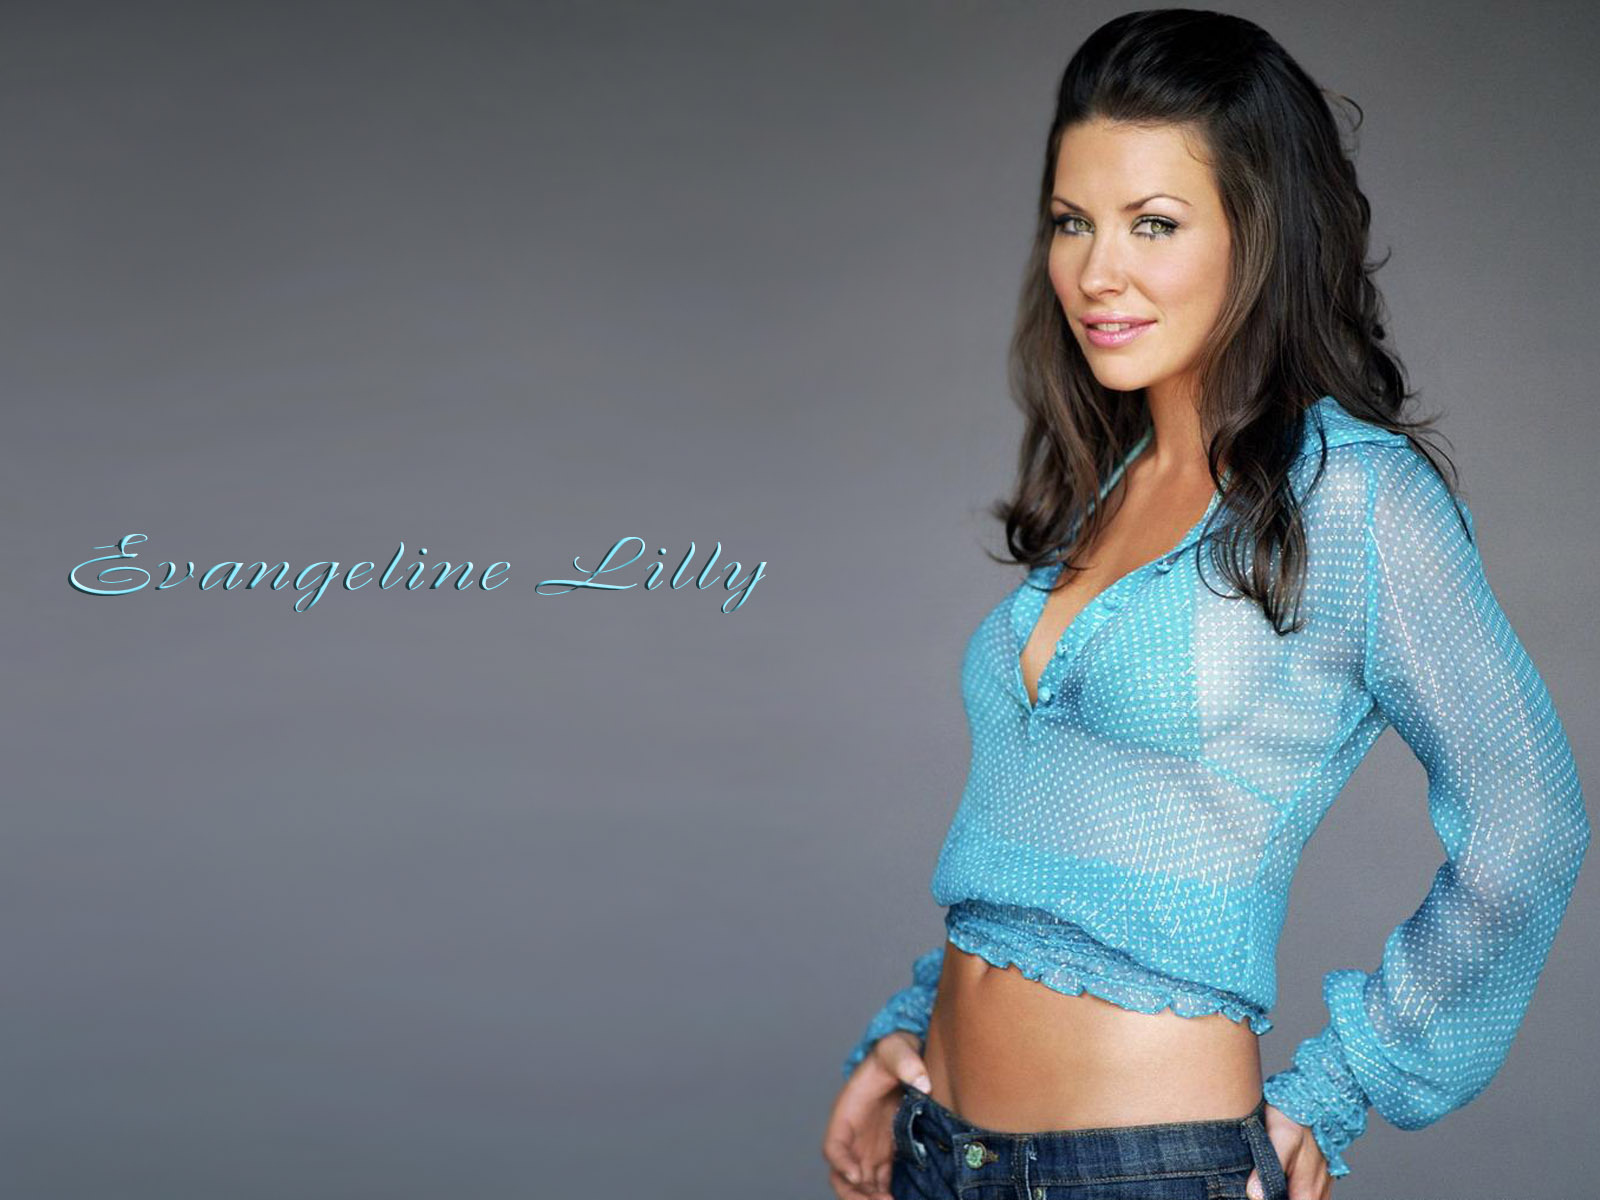 Most Beautiful Evangeline Lilly Wallpaper Full HD Pictures 1600x1200